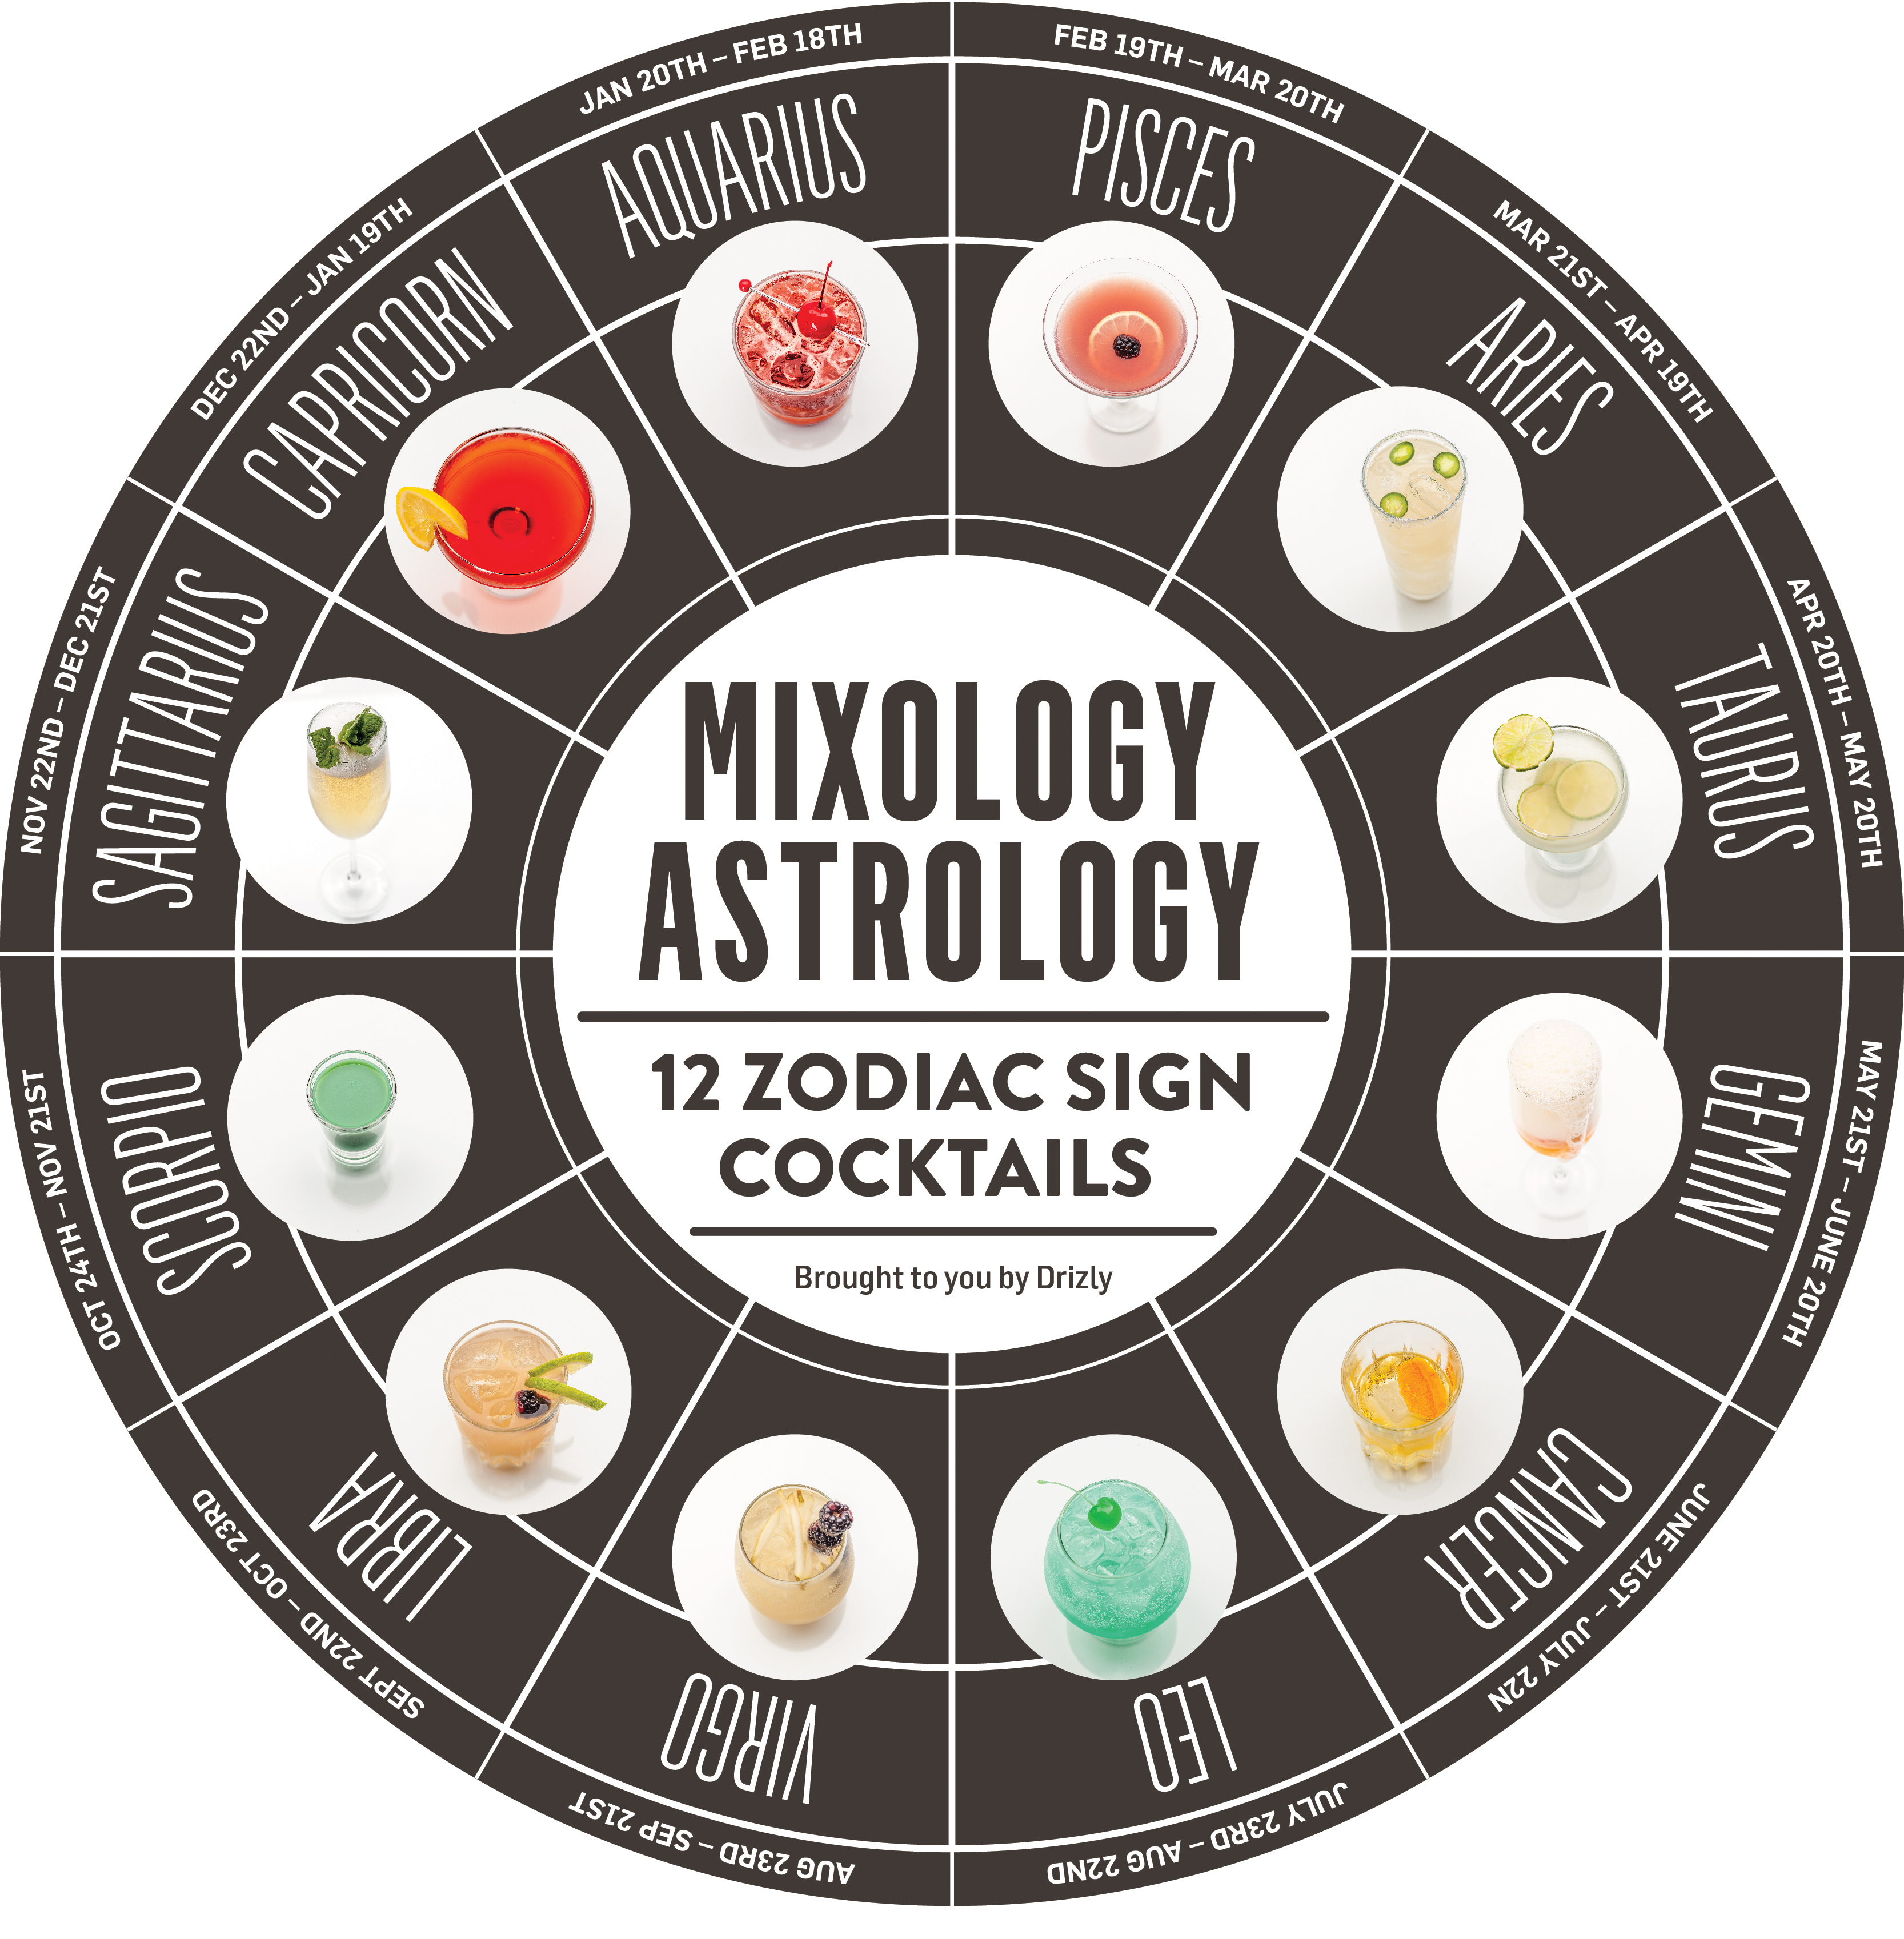 Best cocktail for your zodiac sign 2016 cocktails by for Zodiac signs astrology com